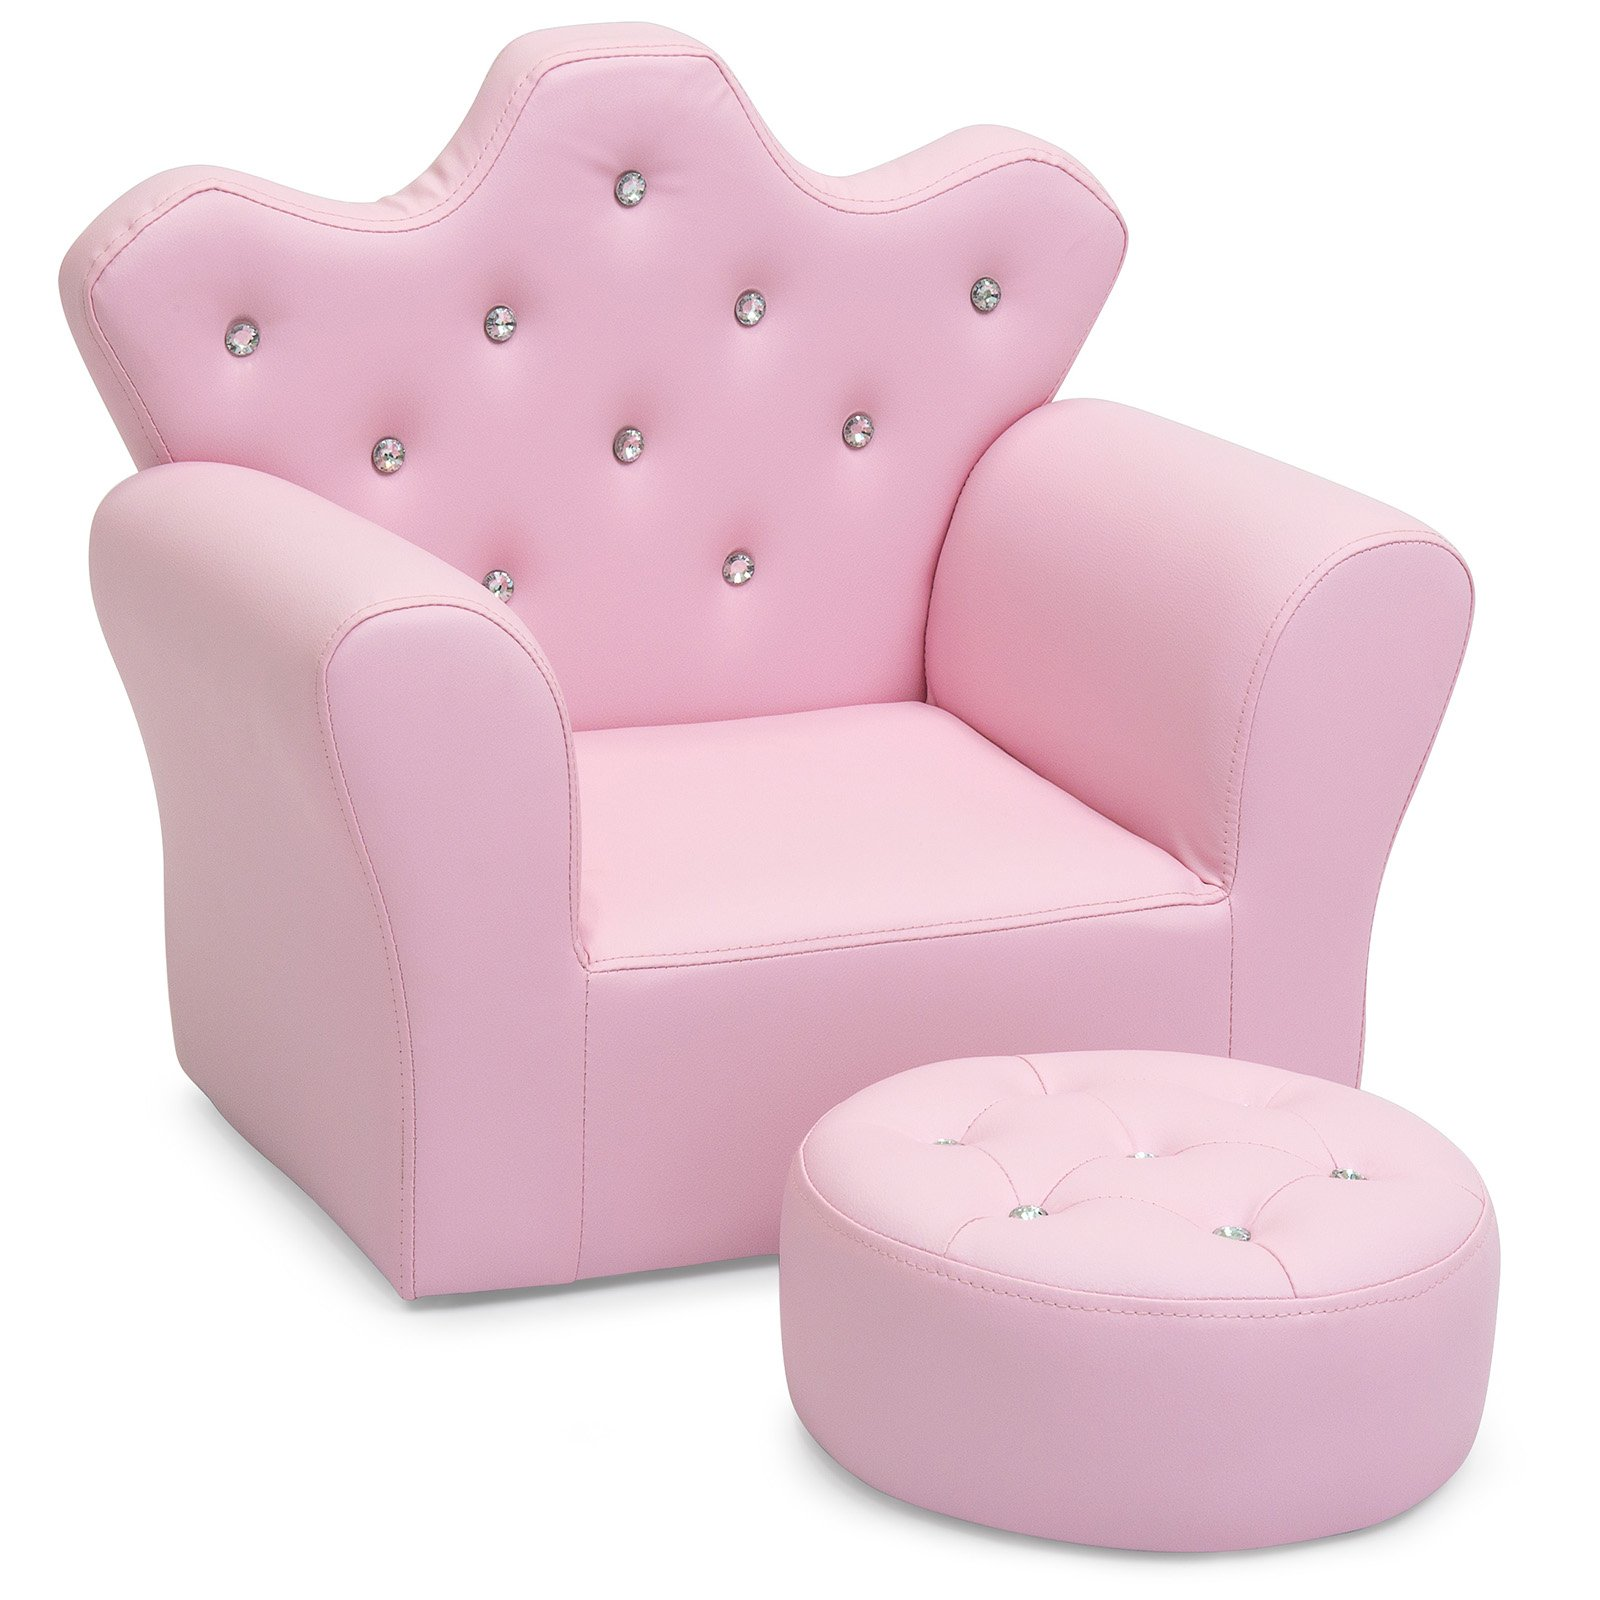 Kids mini sofa chair armrest upholstered tufted w ottoman home furniture pink